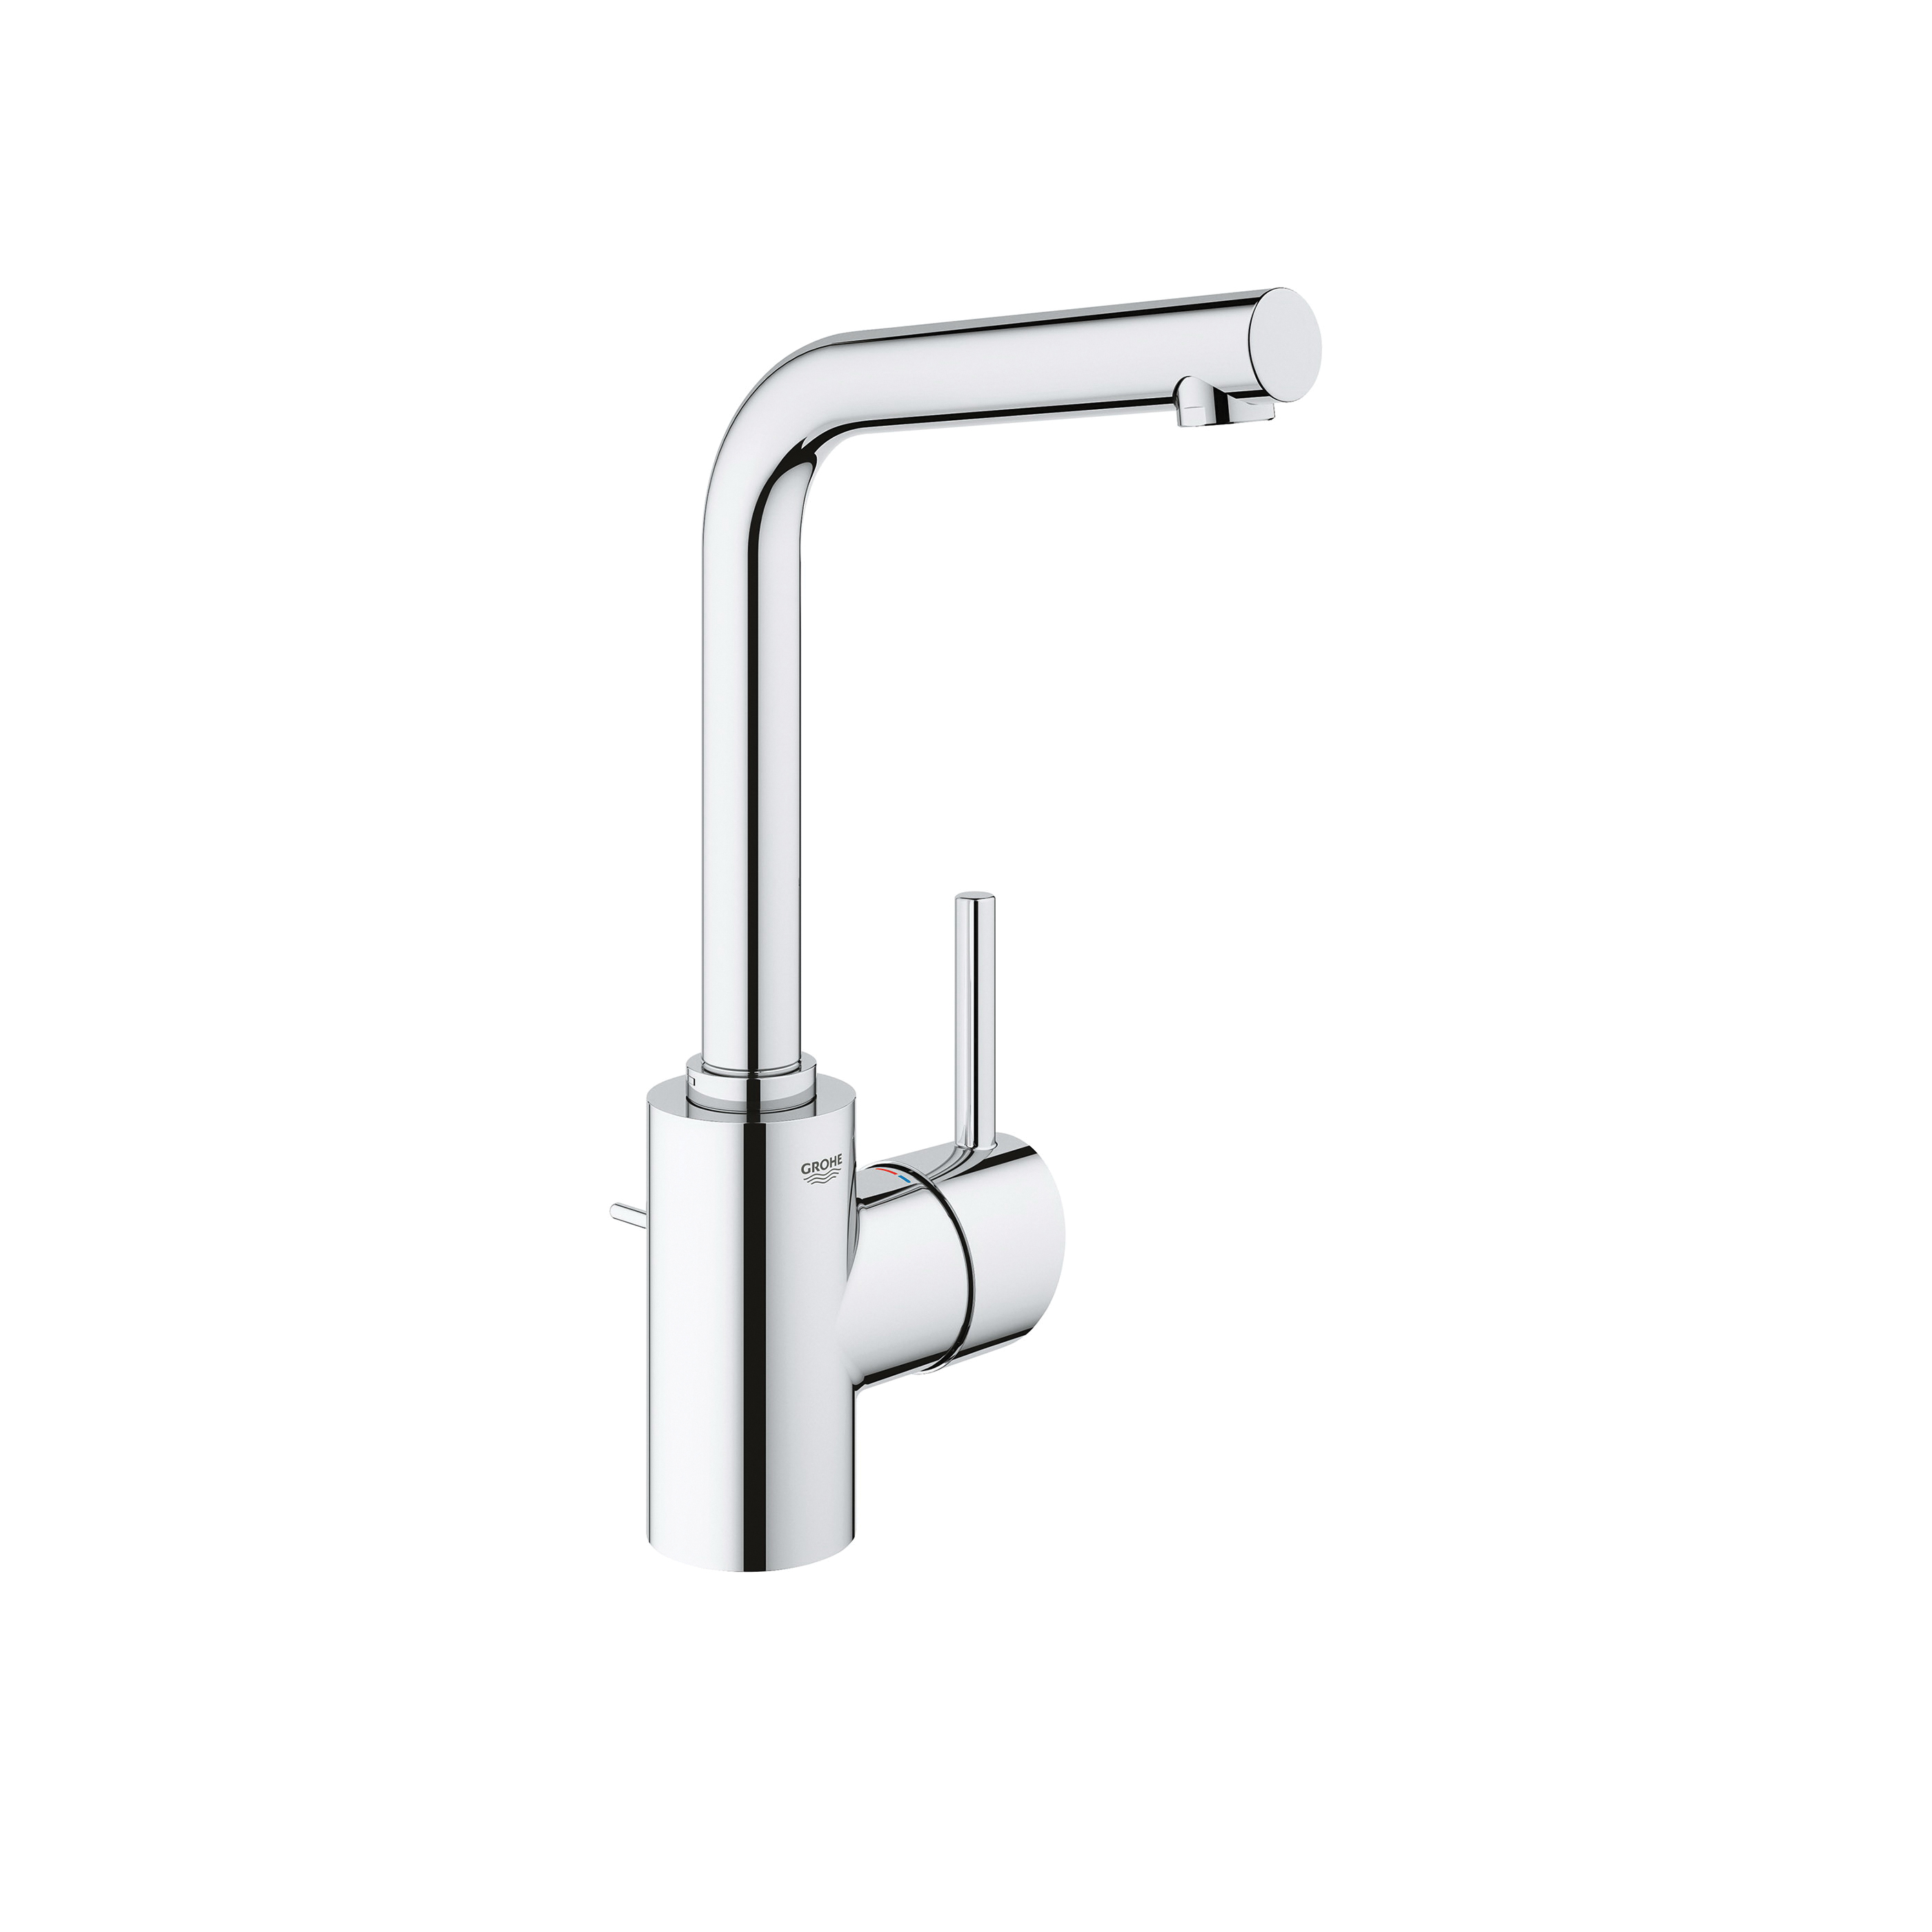 GROHE 23737001 Concetto Bathroom Faucet, 2.2 gpm, 10-3/8 in H Spout, 1 Handle, Pop-Up Drain, 1 Faucet Hole, StarLight® Chrome, Import